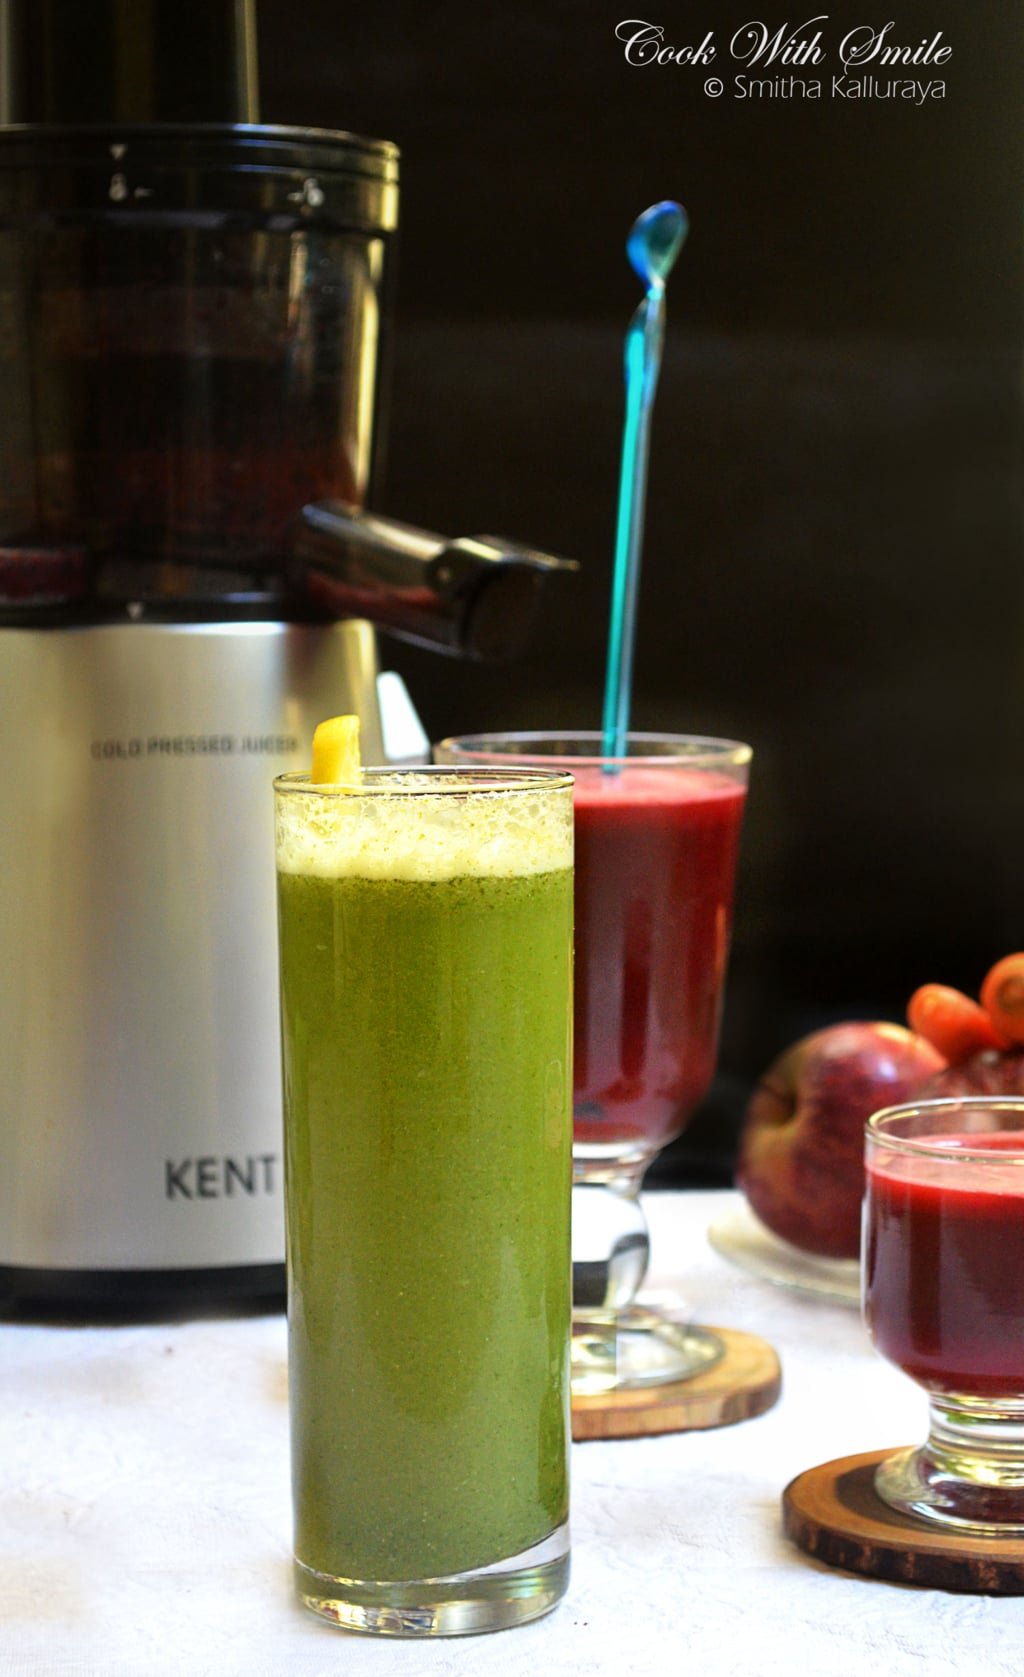 how is Kent cold pressed juicer